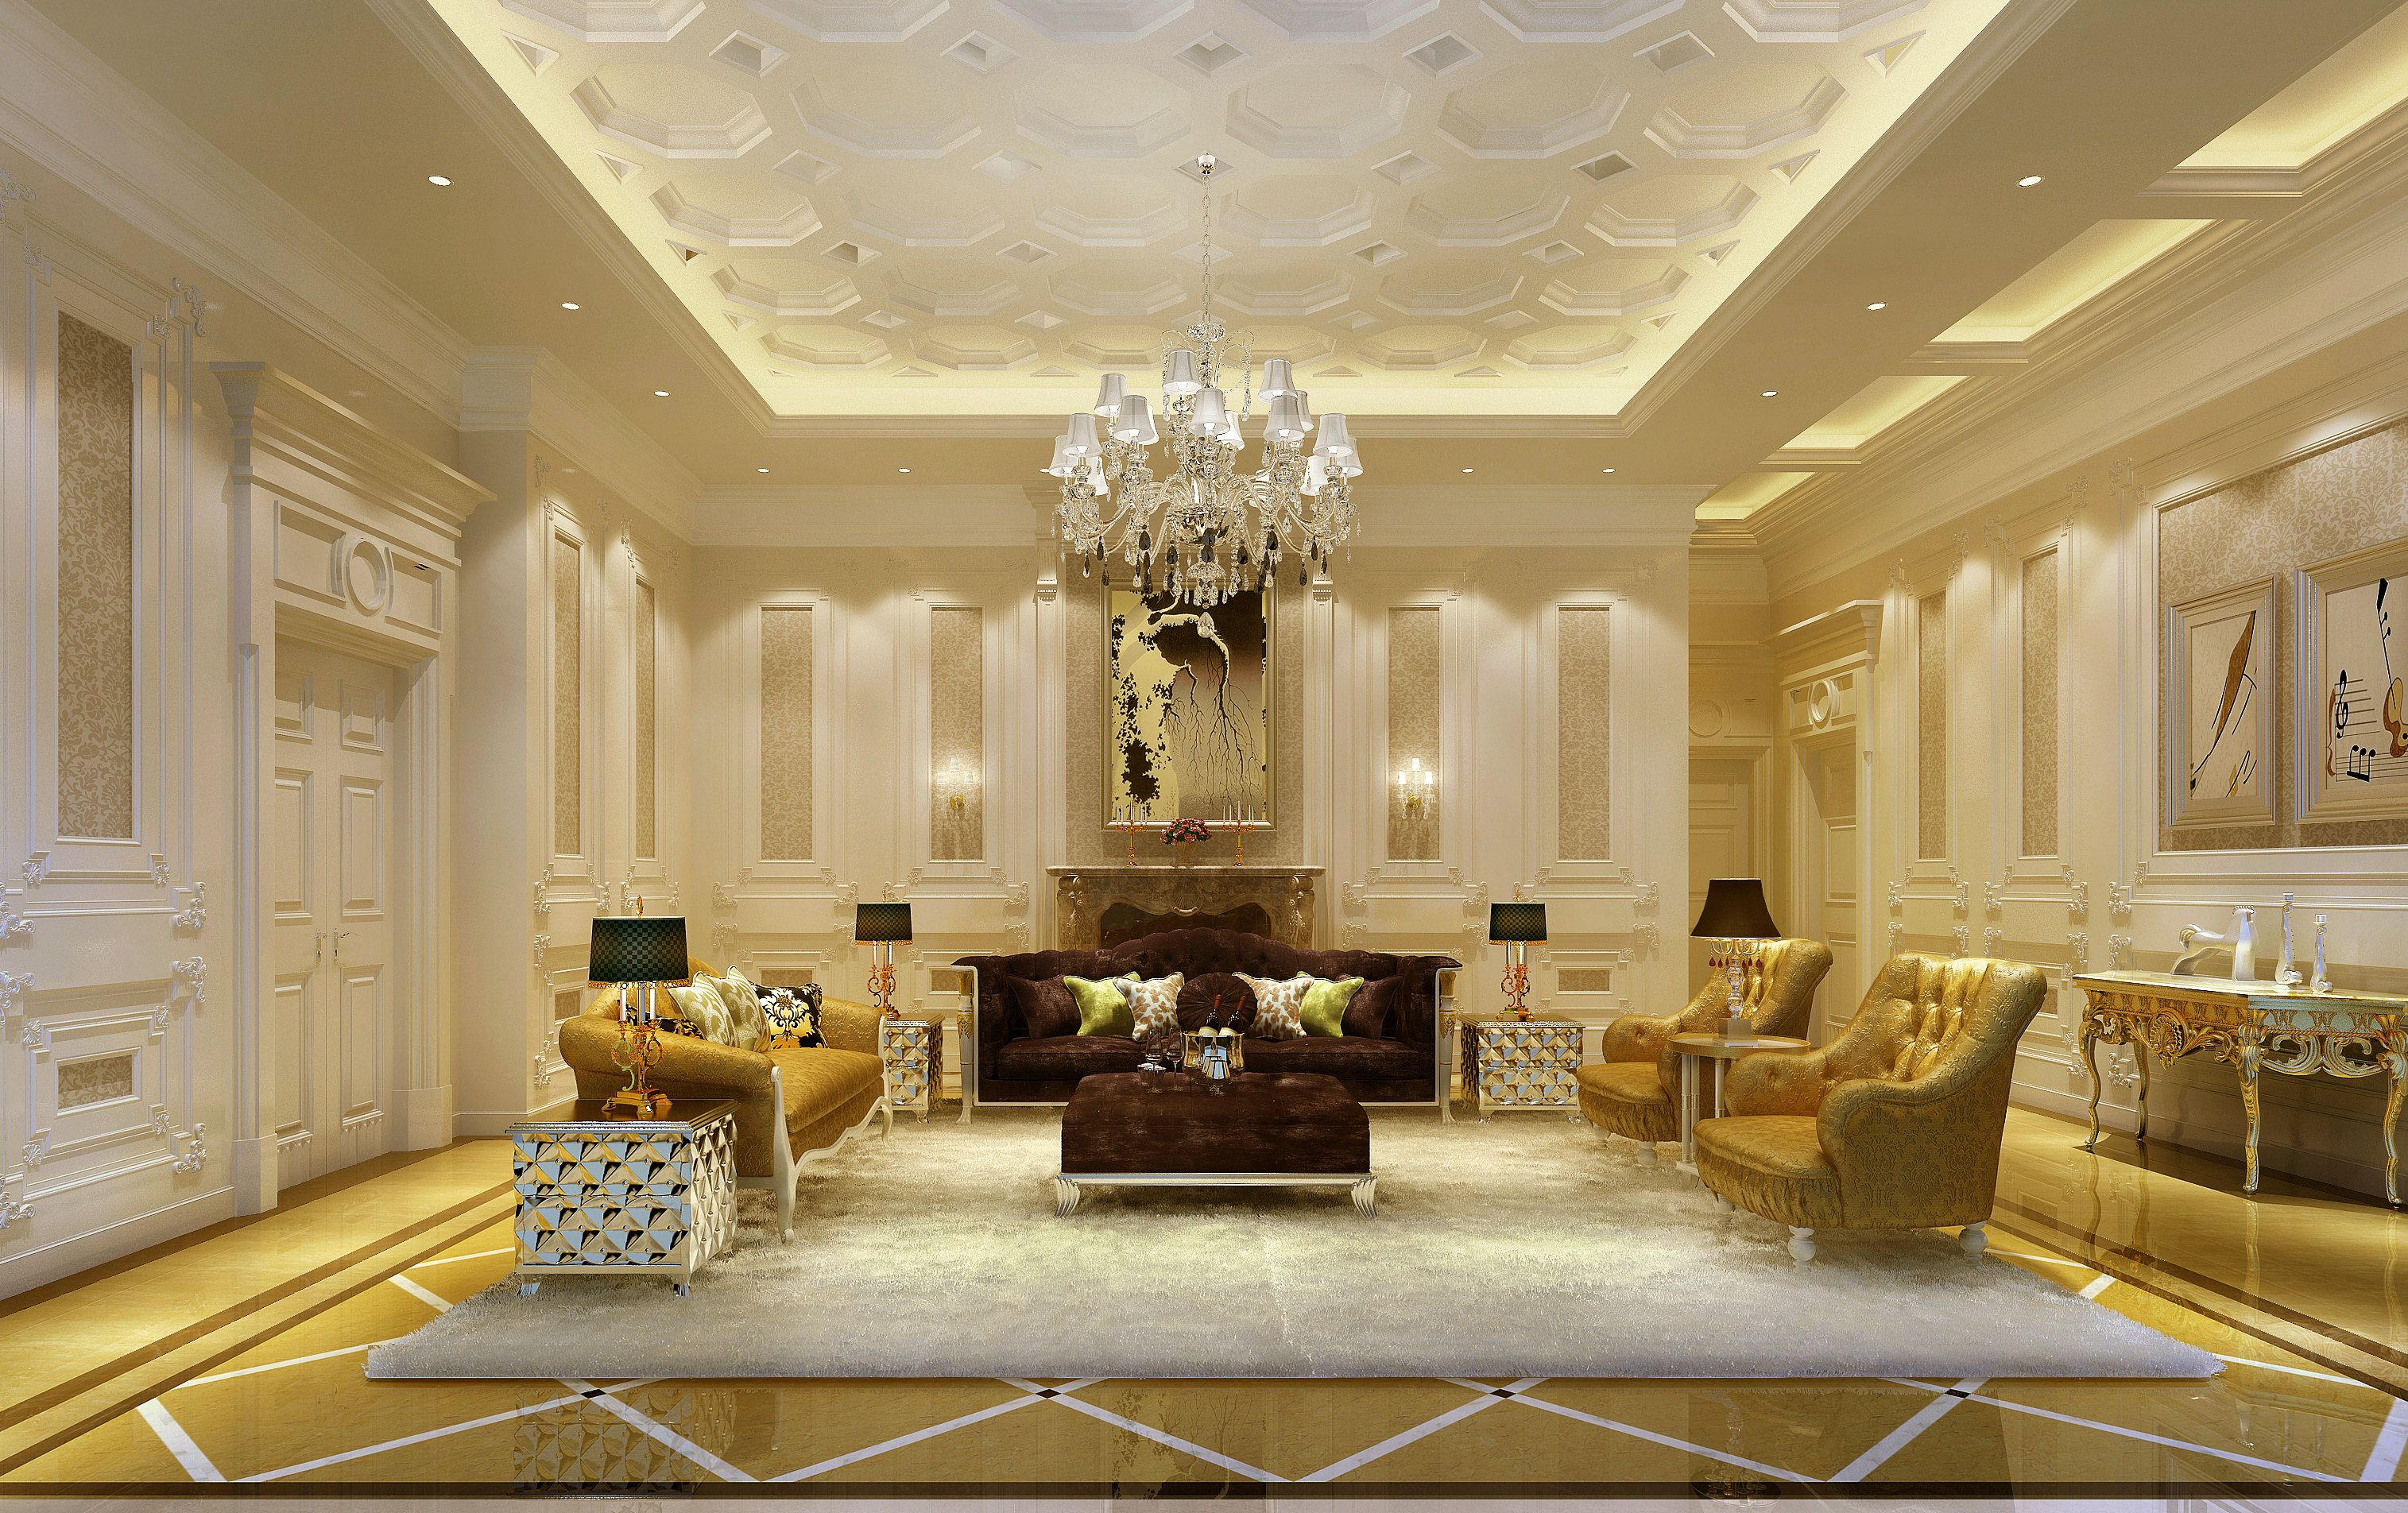 Luxury Living Room Design Model Brilliant Αποτέλεσμα Εικόνας Για Luxury Sitting Rooms  Rich  Famous . Inspiration